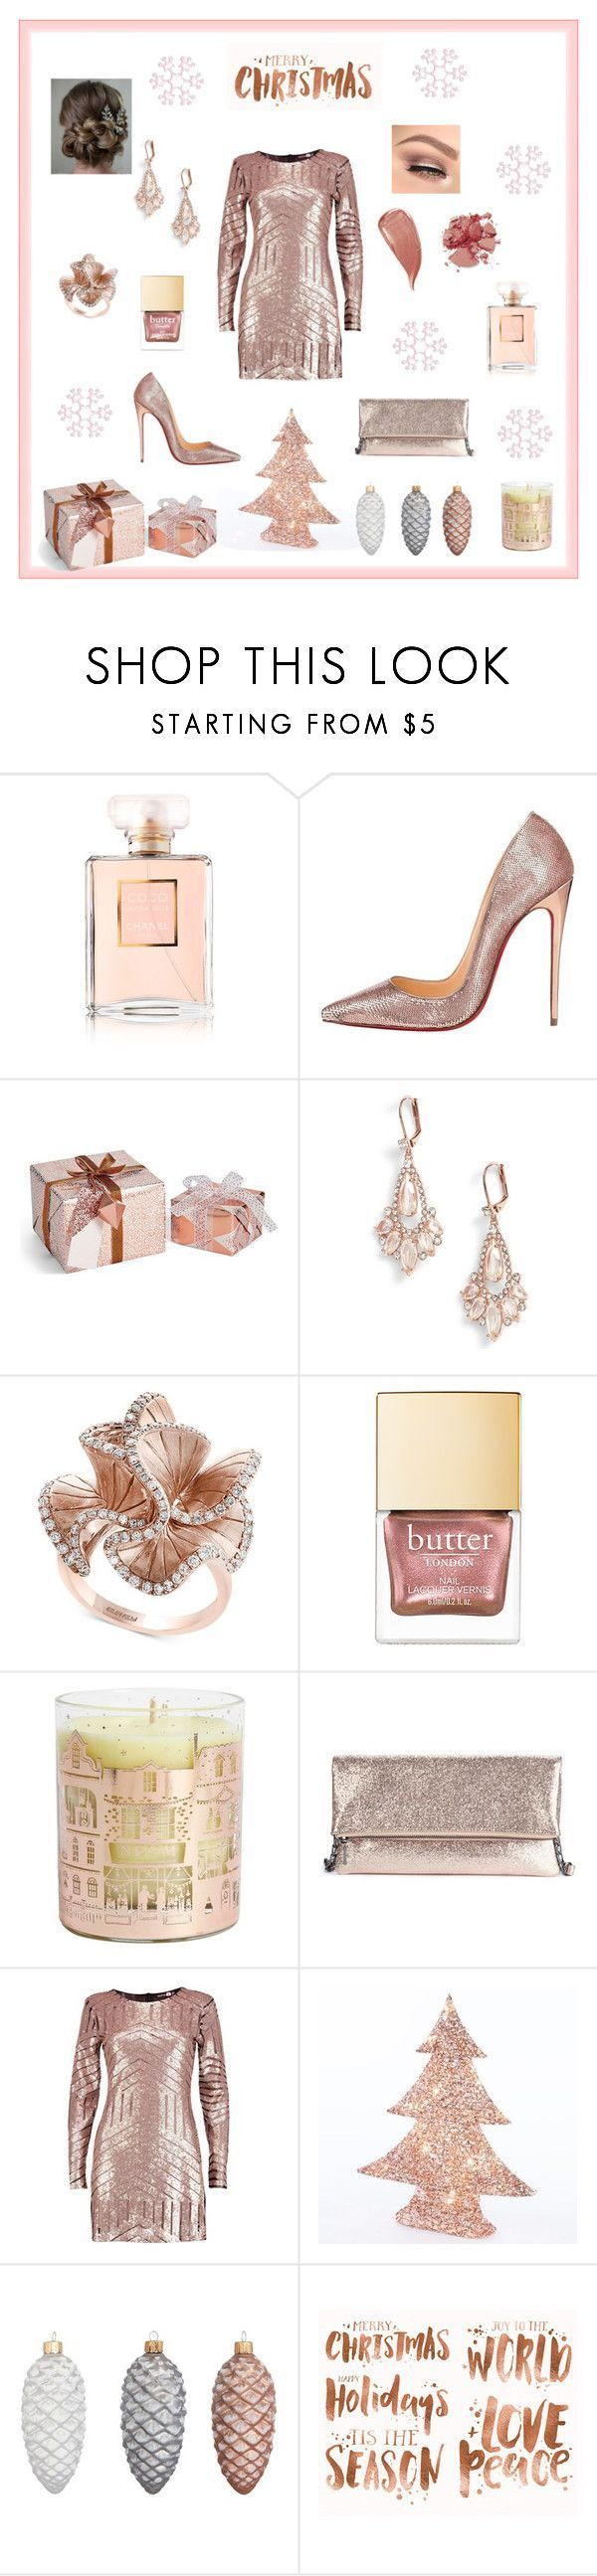 """Christmas Party Rose Gold"" by marnie1979 ❤ liked on Polyvore featuring Chanel, Christian Louboutin, Kate Spade, Effy Jewelry, NEOM Organics, Sole Society, Boohoo, John Lewis and Kevyn Aucoin #christianlouboutingold"